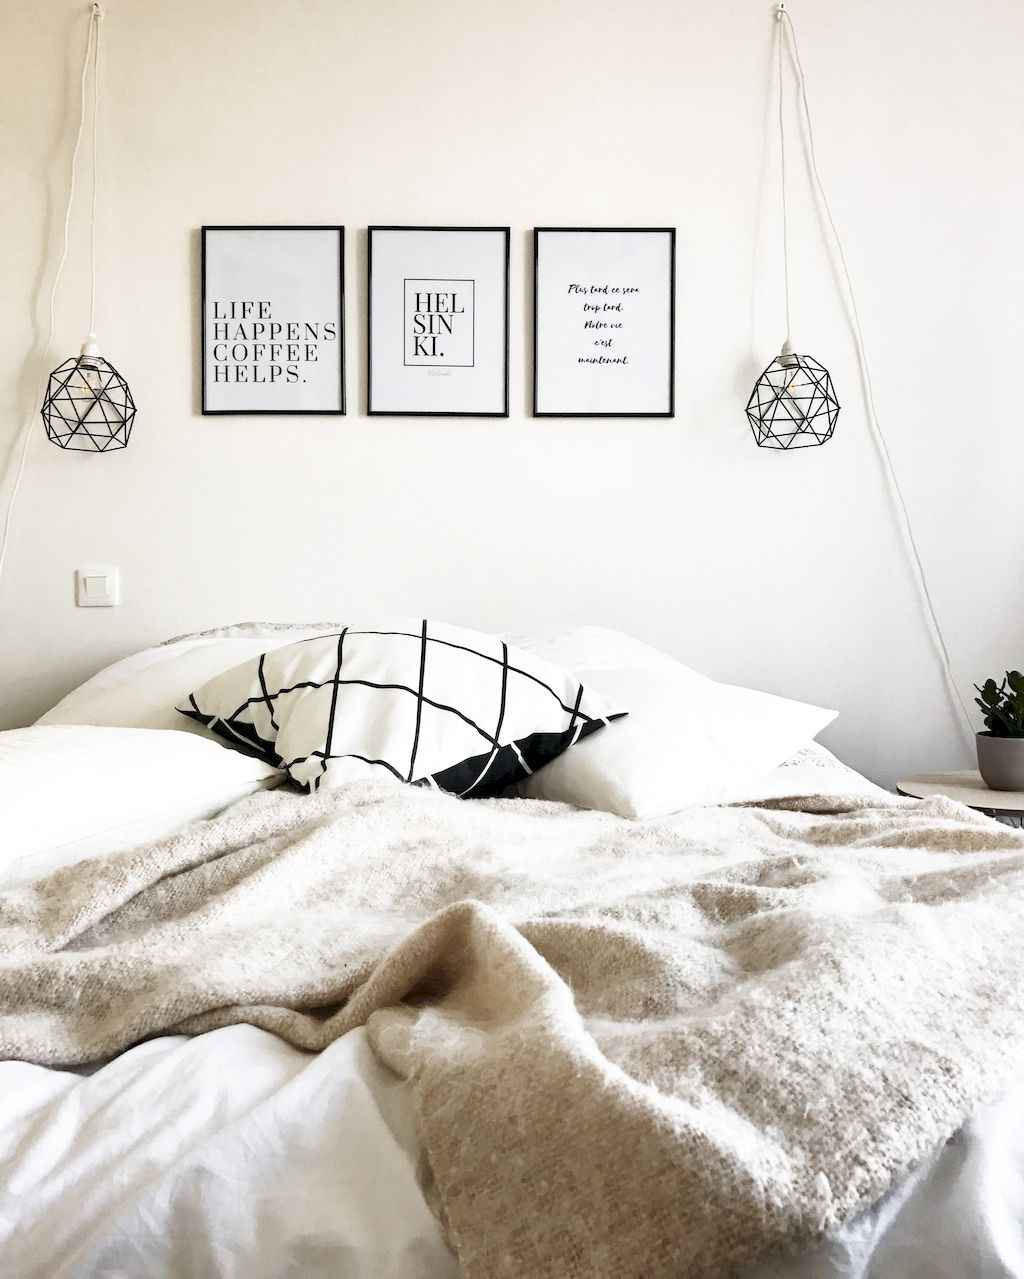 Clever college apartment decorating ideas on a budget (57)